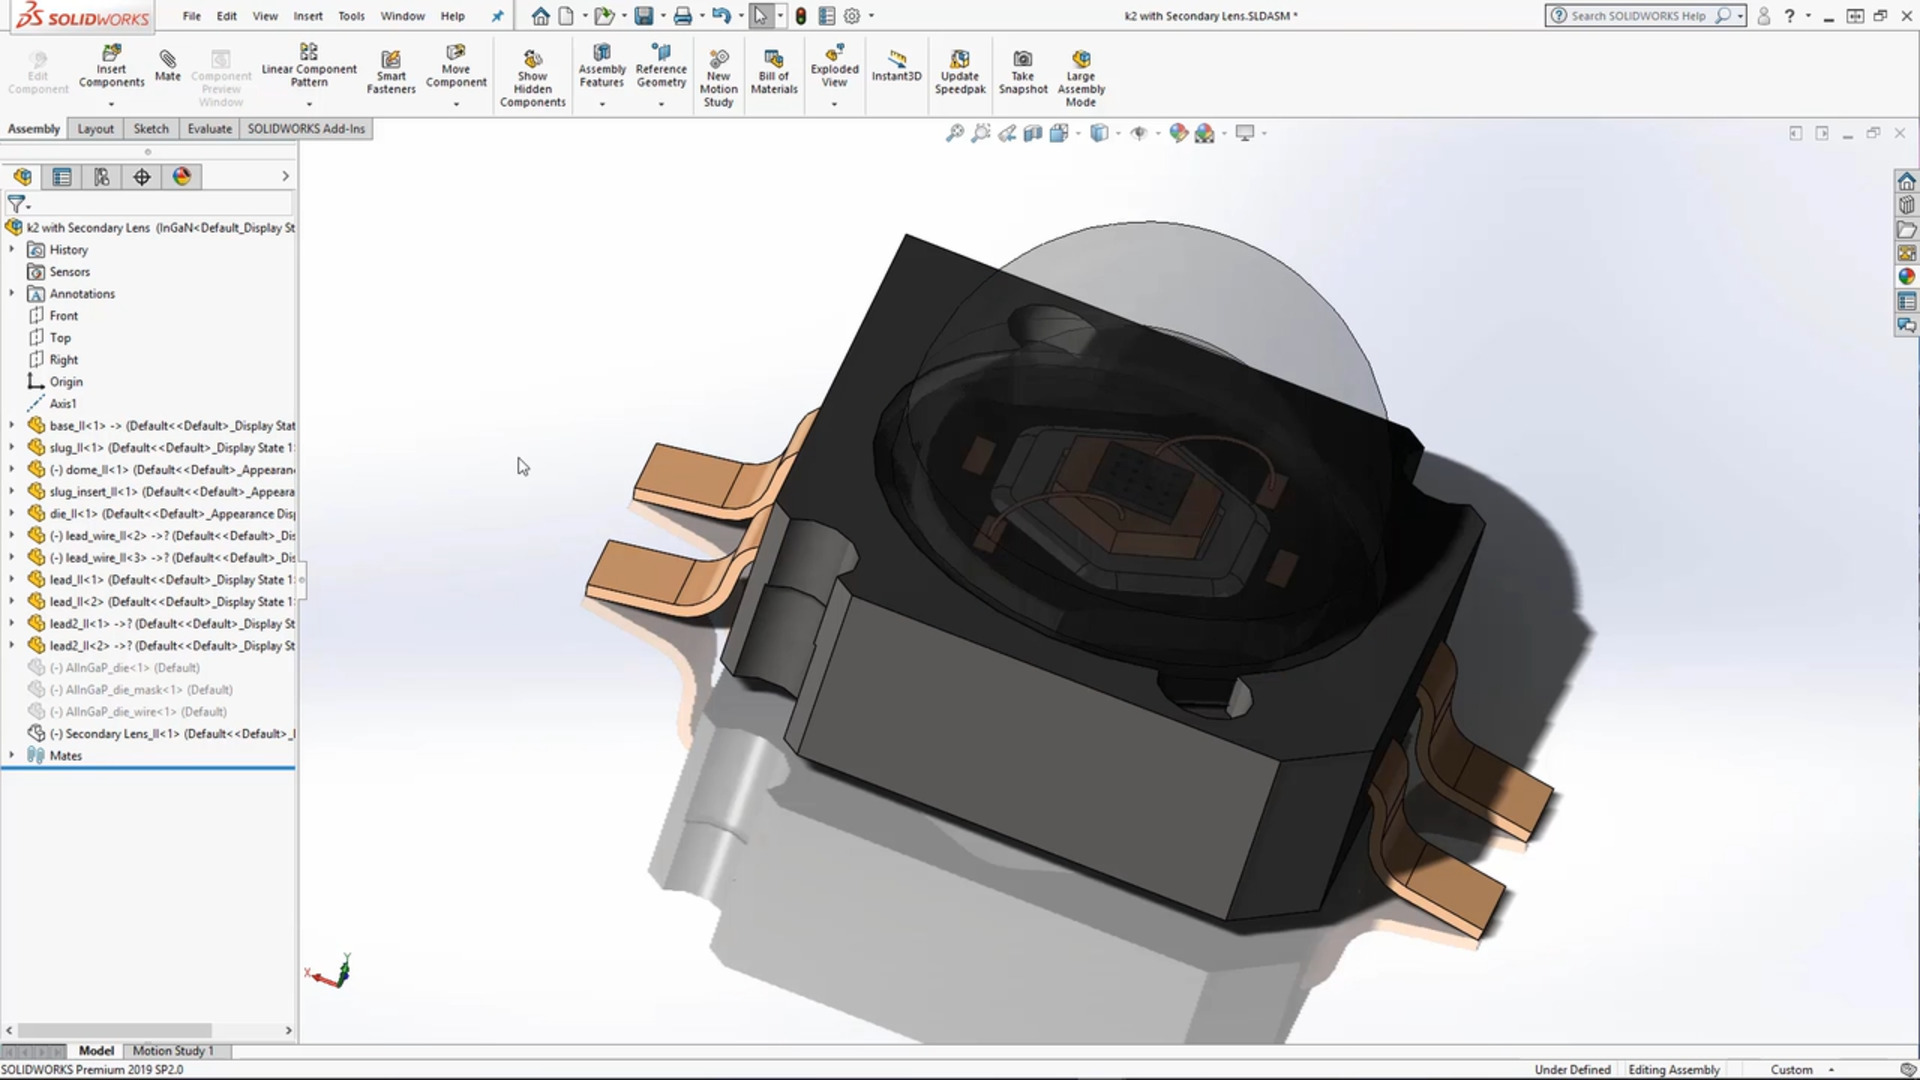 synopsys lighttools in cad environments for freeform optical design